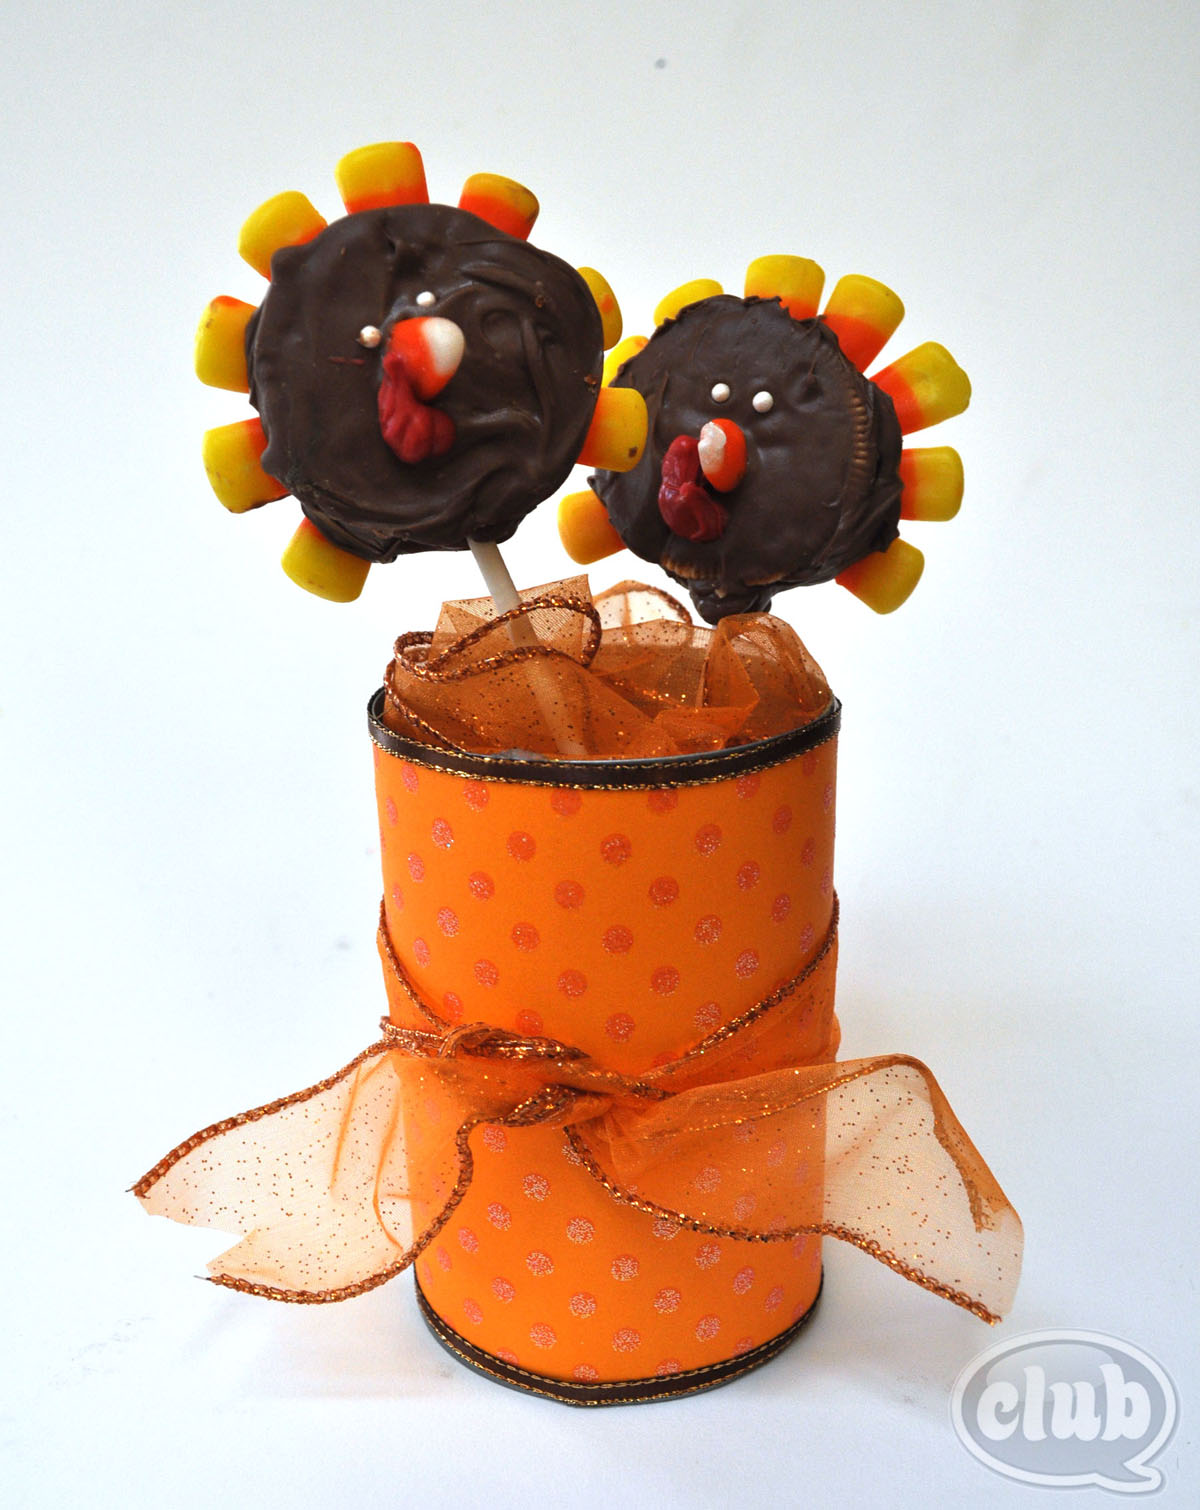 Turkey Pops in decorated can Fun easy turkey crafts for kids to make Craft For Kids To Make A Turkey